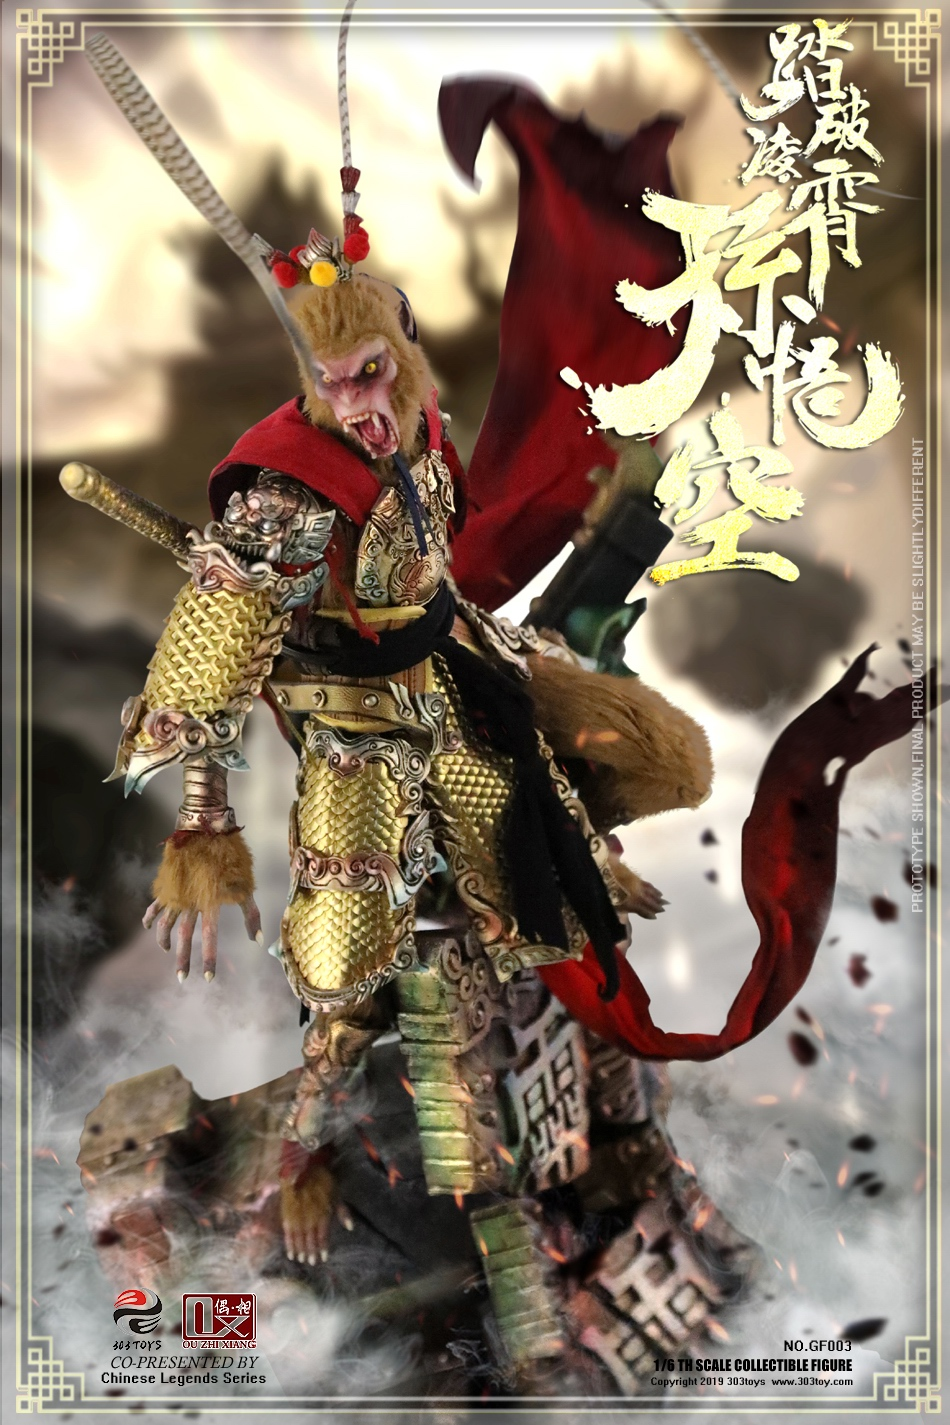 EveningPhase - NEW PRODUCT: 303TOYS x Evening phase: 1/6 National Wind Legend Series - Sun Wukong Monkey King Apocalypse & Dasheng Qitian & Stepping 18102511